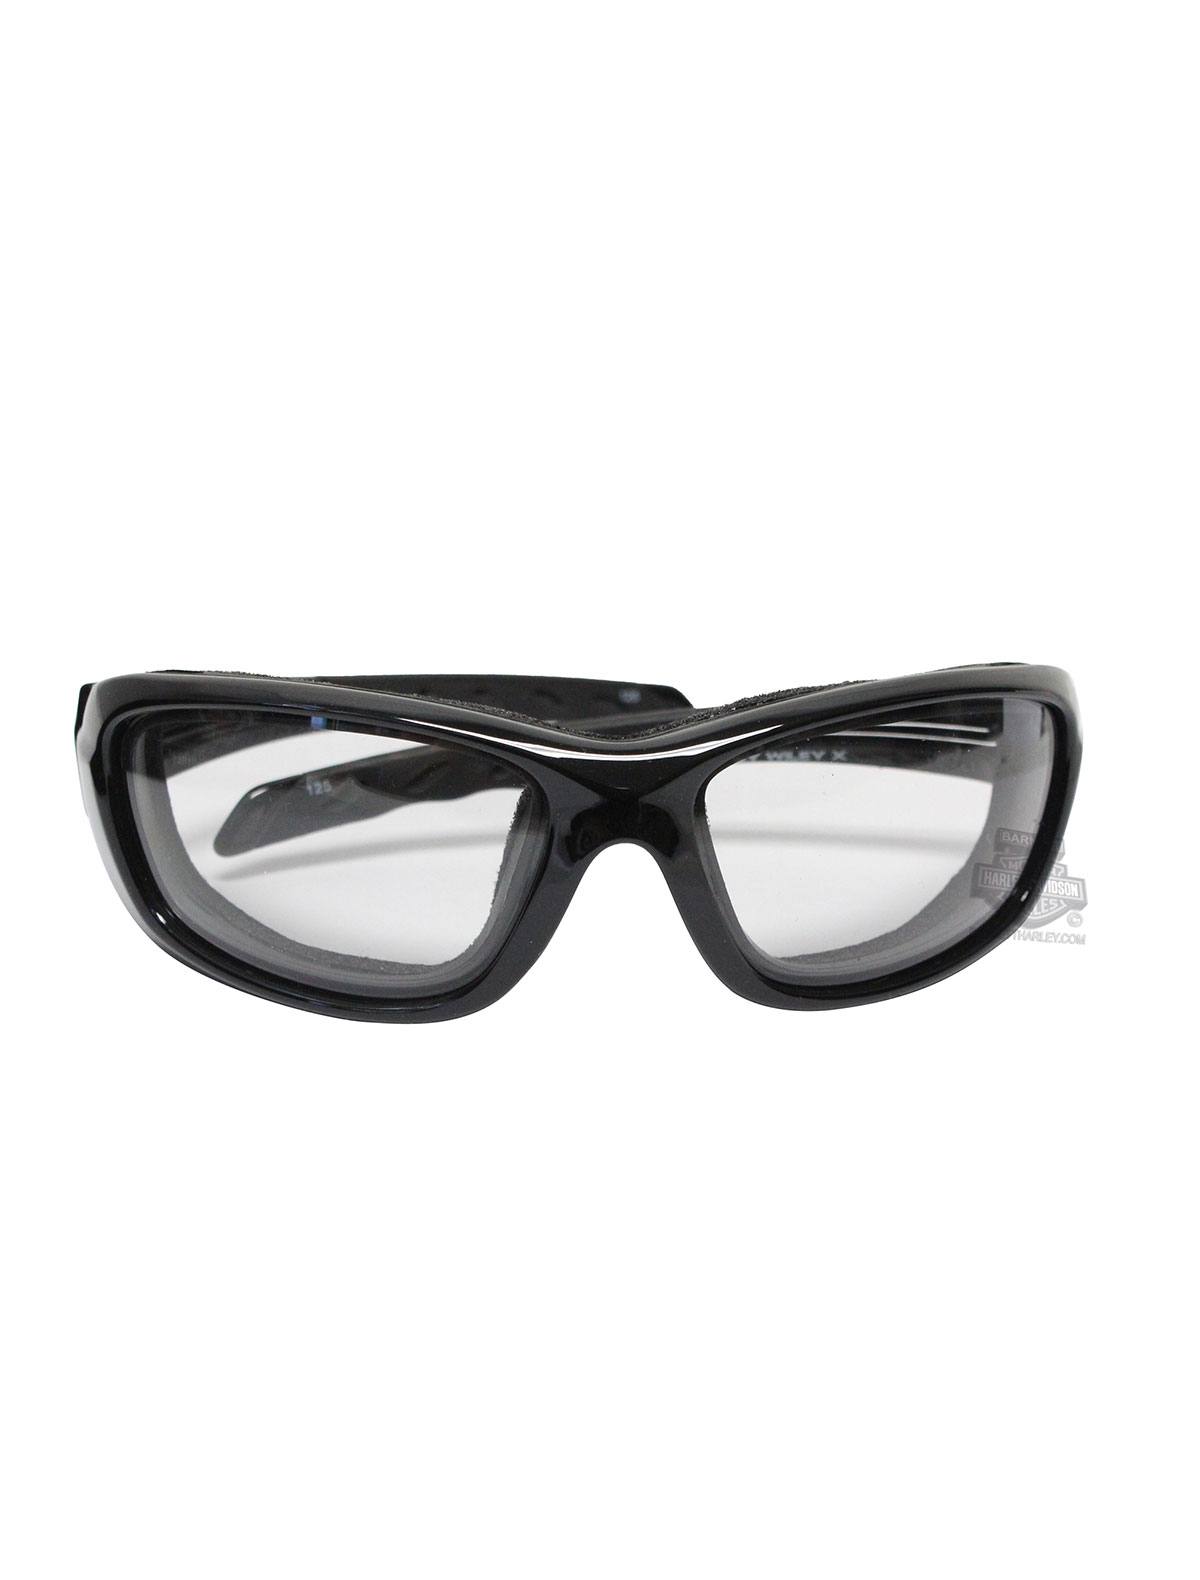 ef231d5a9c ... Gravity LA Light Adjust Smoke Grey Lenses in a Gloss Black Frame  Sunglasses by Wiley X®. Tap to expand